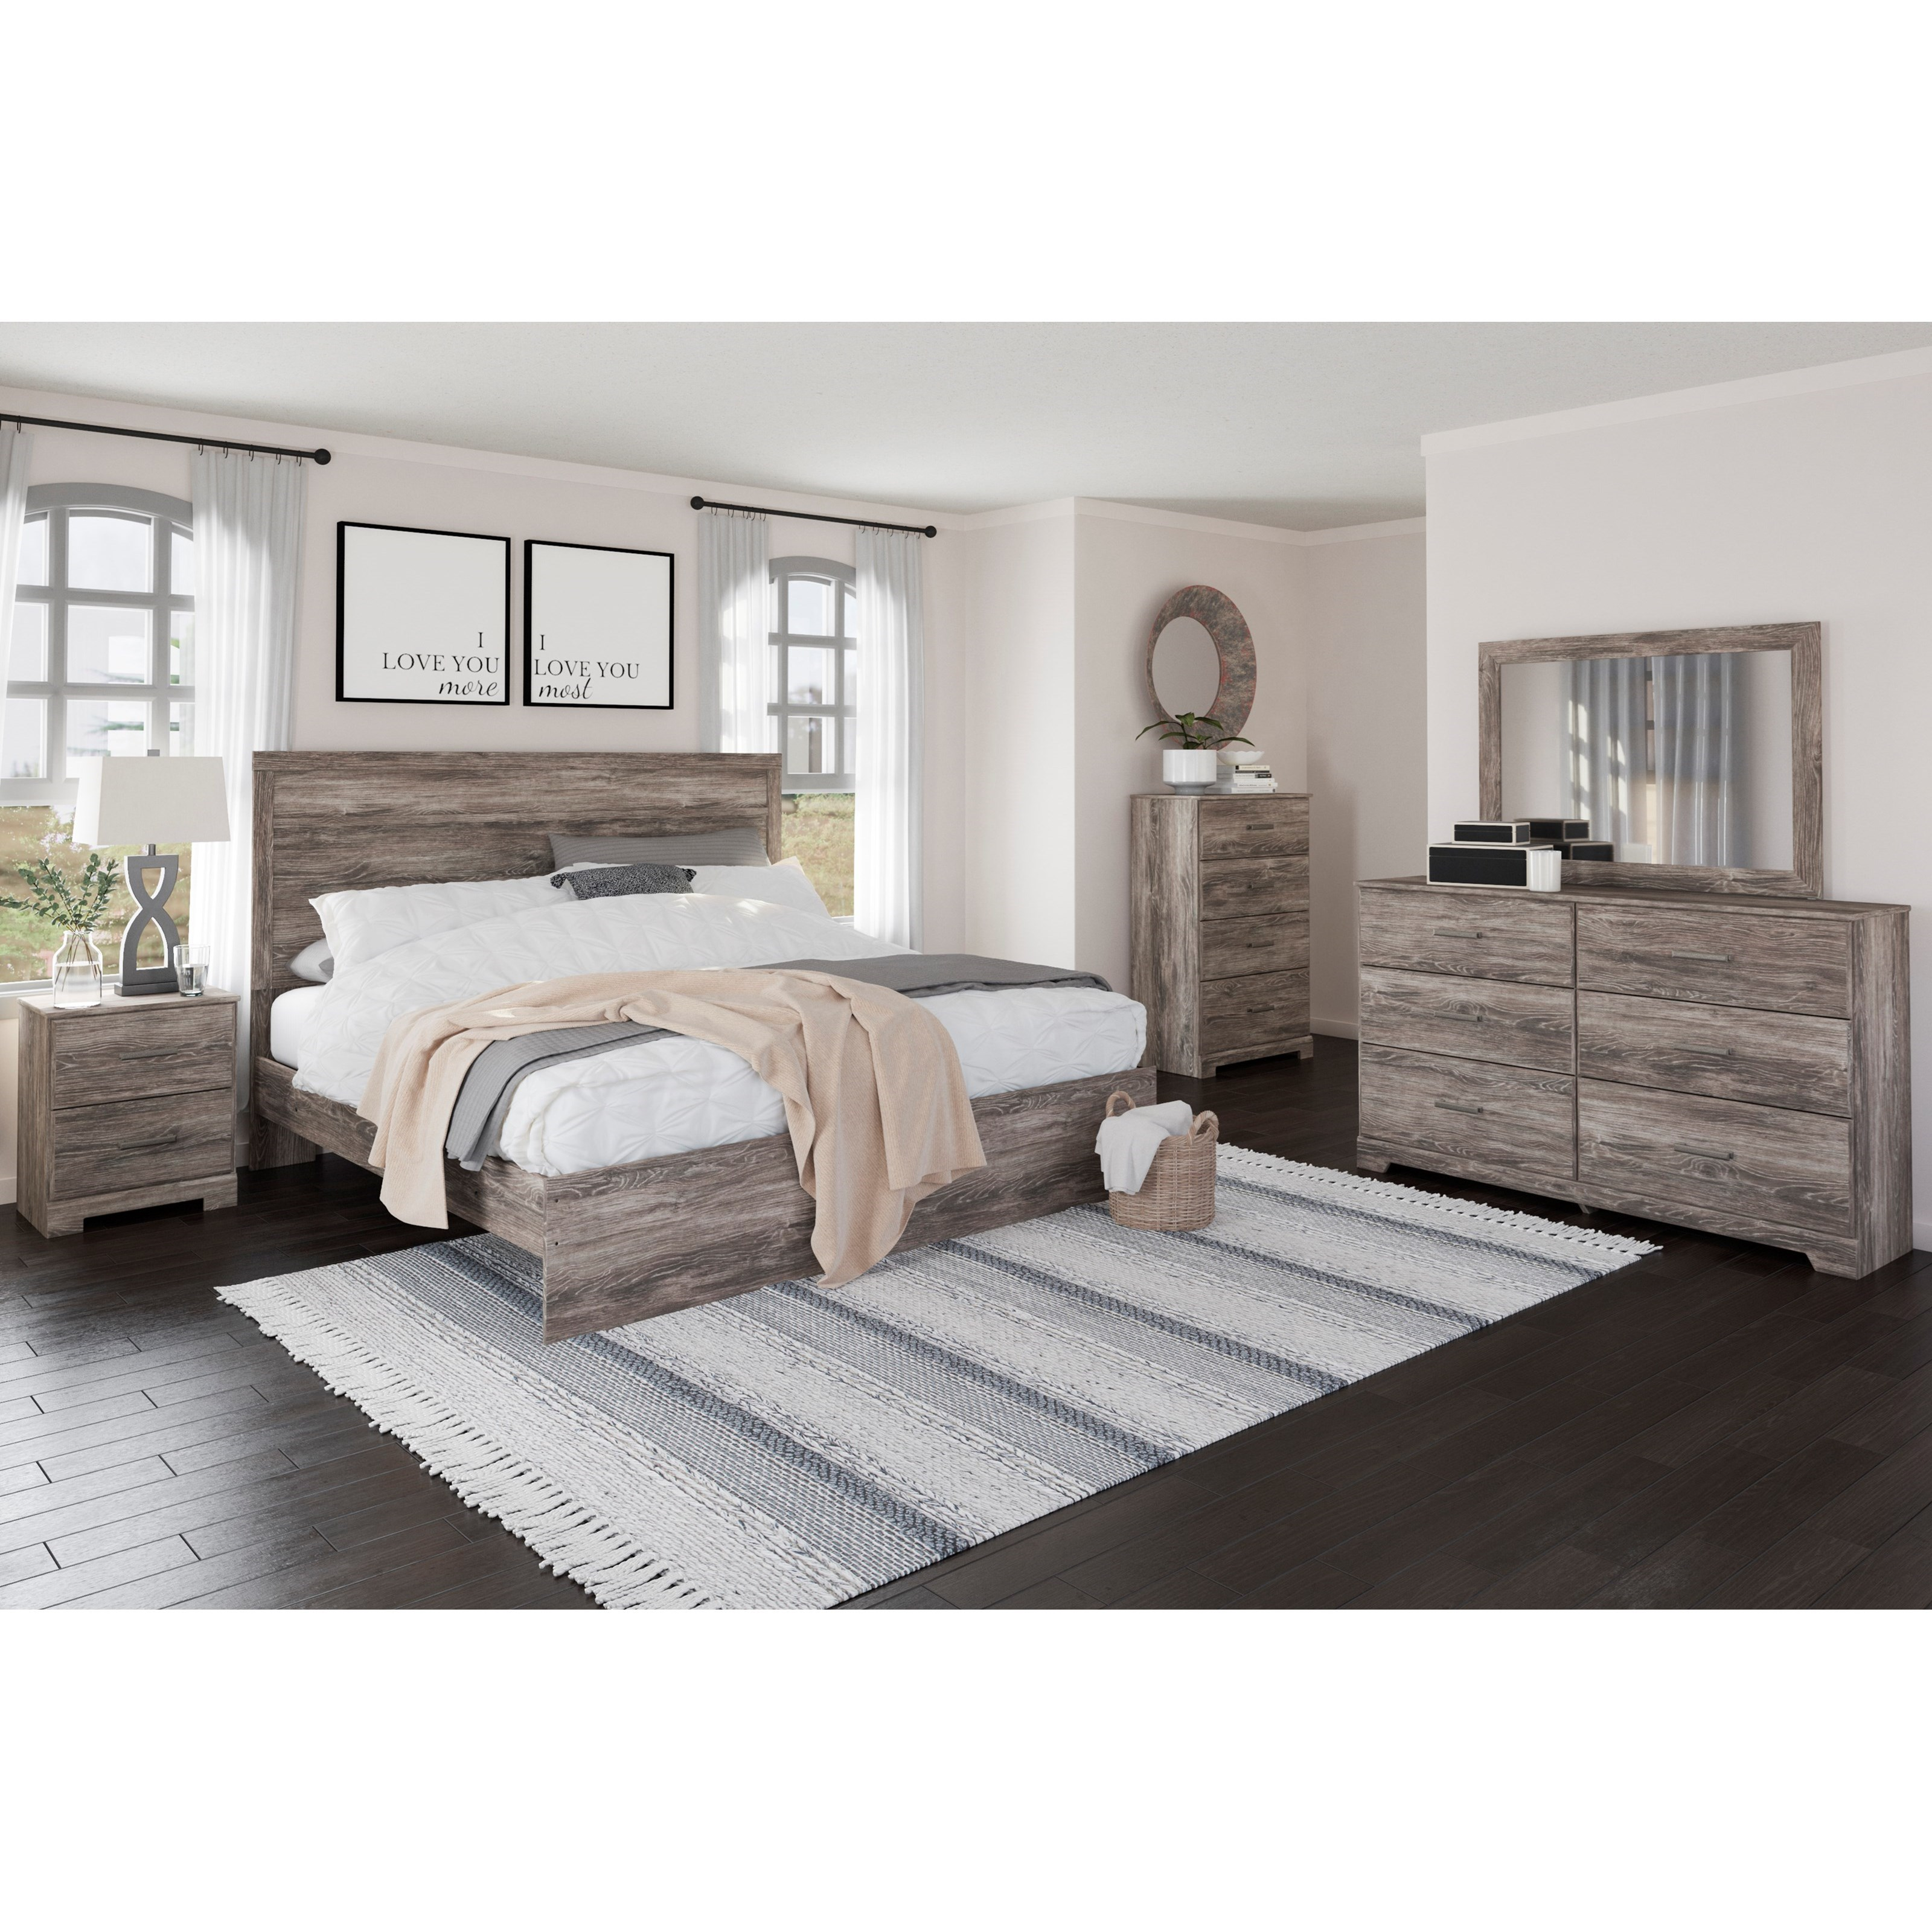 Ralinski King Bedroom Group by Signature Design by Ashley at Sparks HomeStore